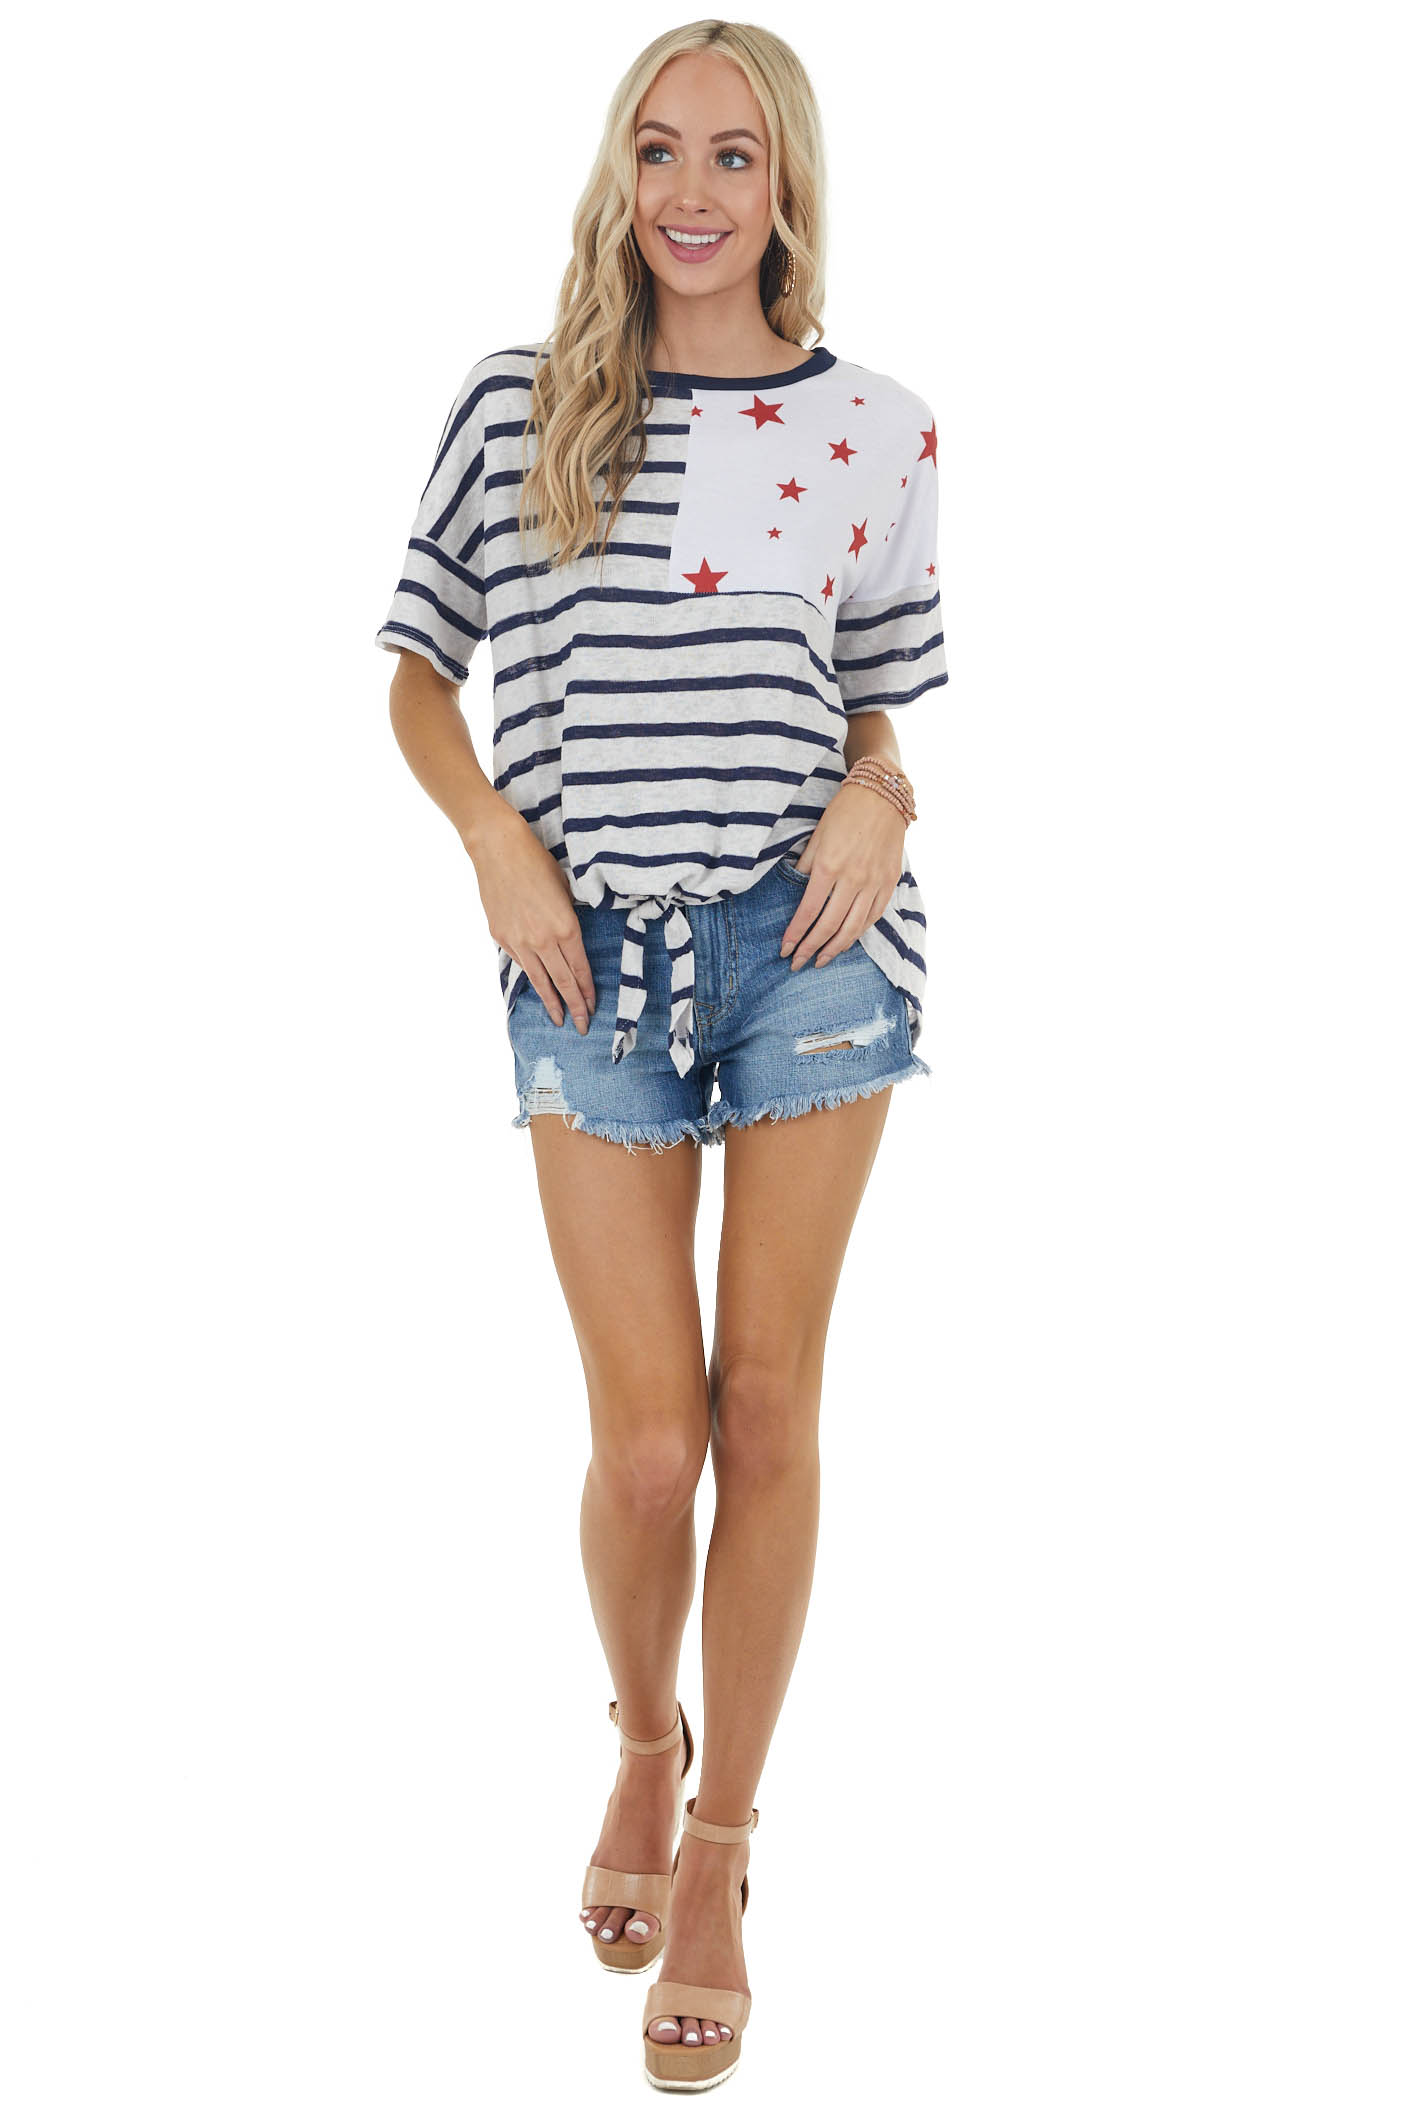 Navy and White Striped Top with Contrasting Red Star Detail